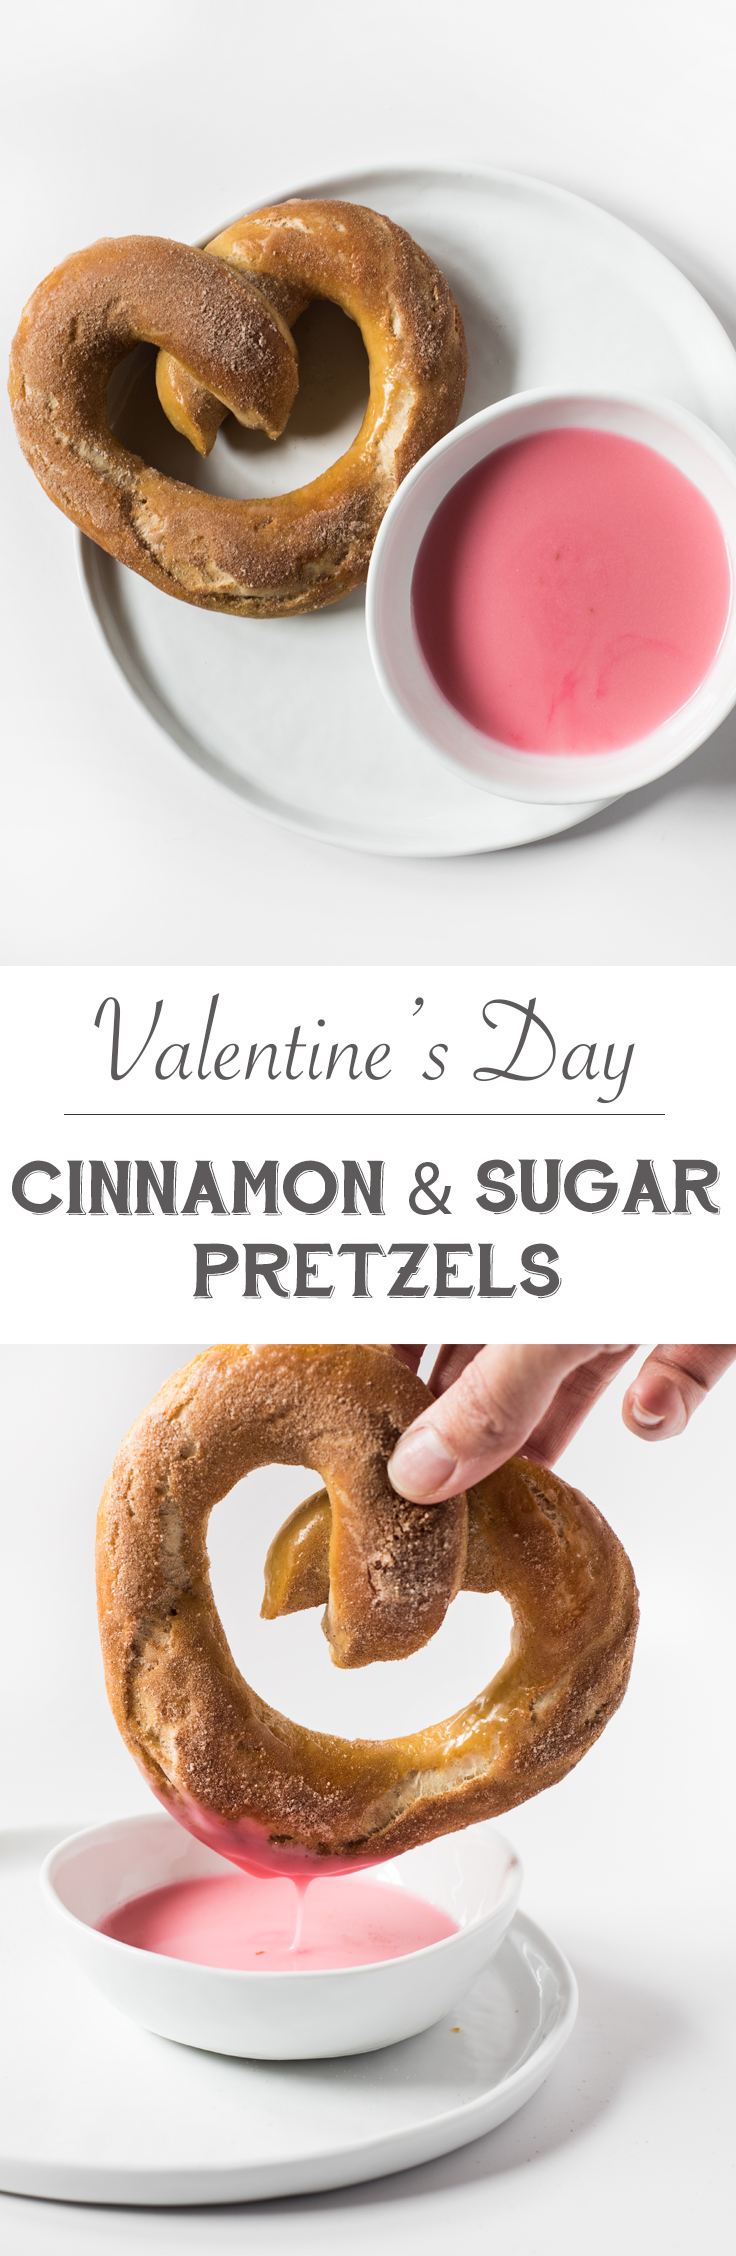 Give your love a piece of your heart this Valentine's Day with these Cinnamon & Sugar Heart Shaped Pretzels.